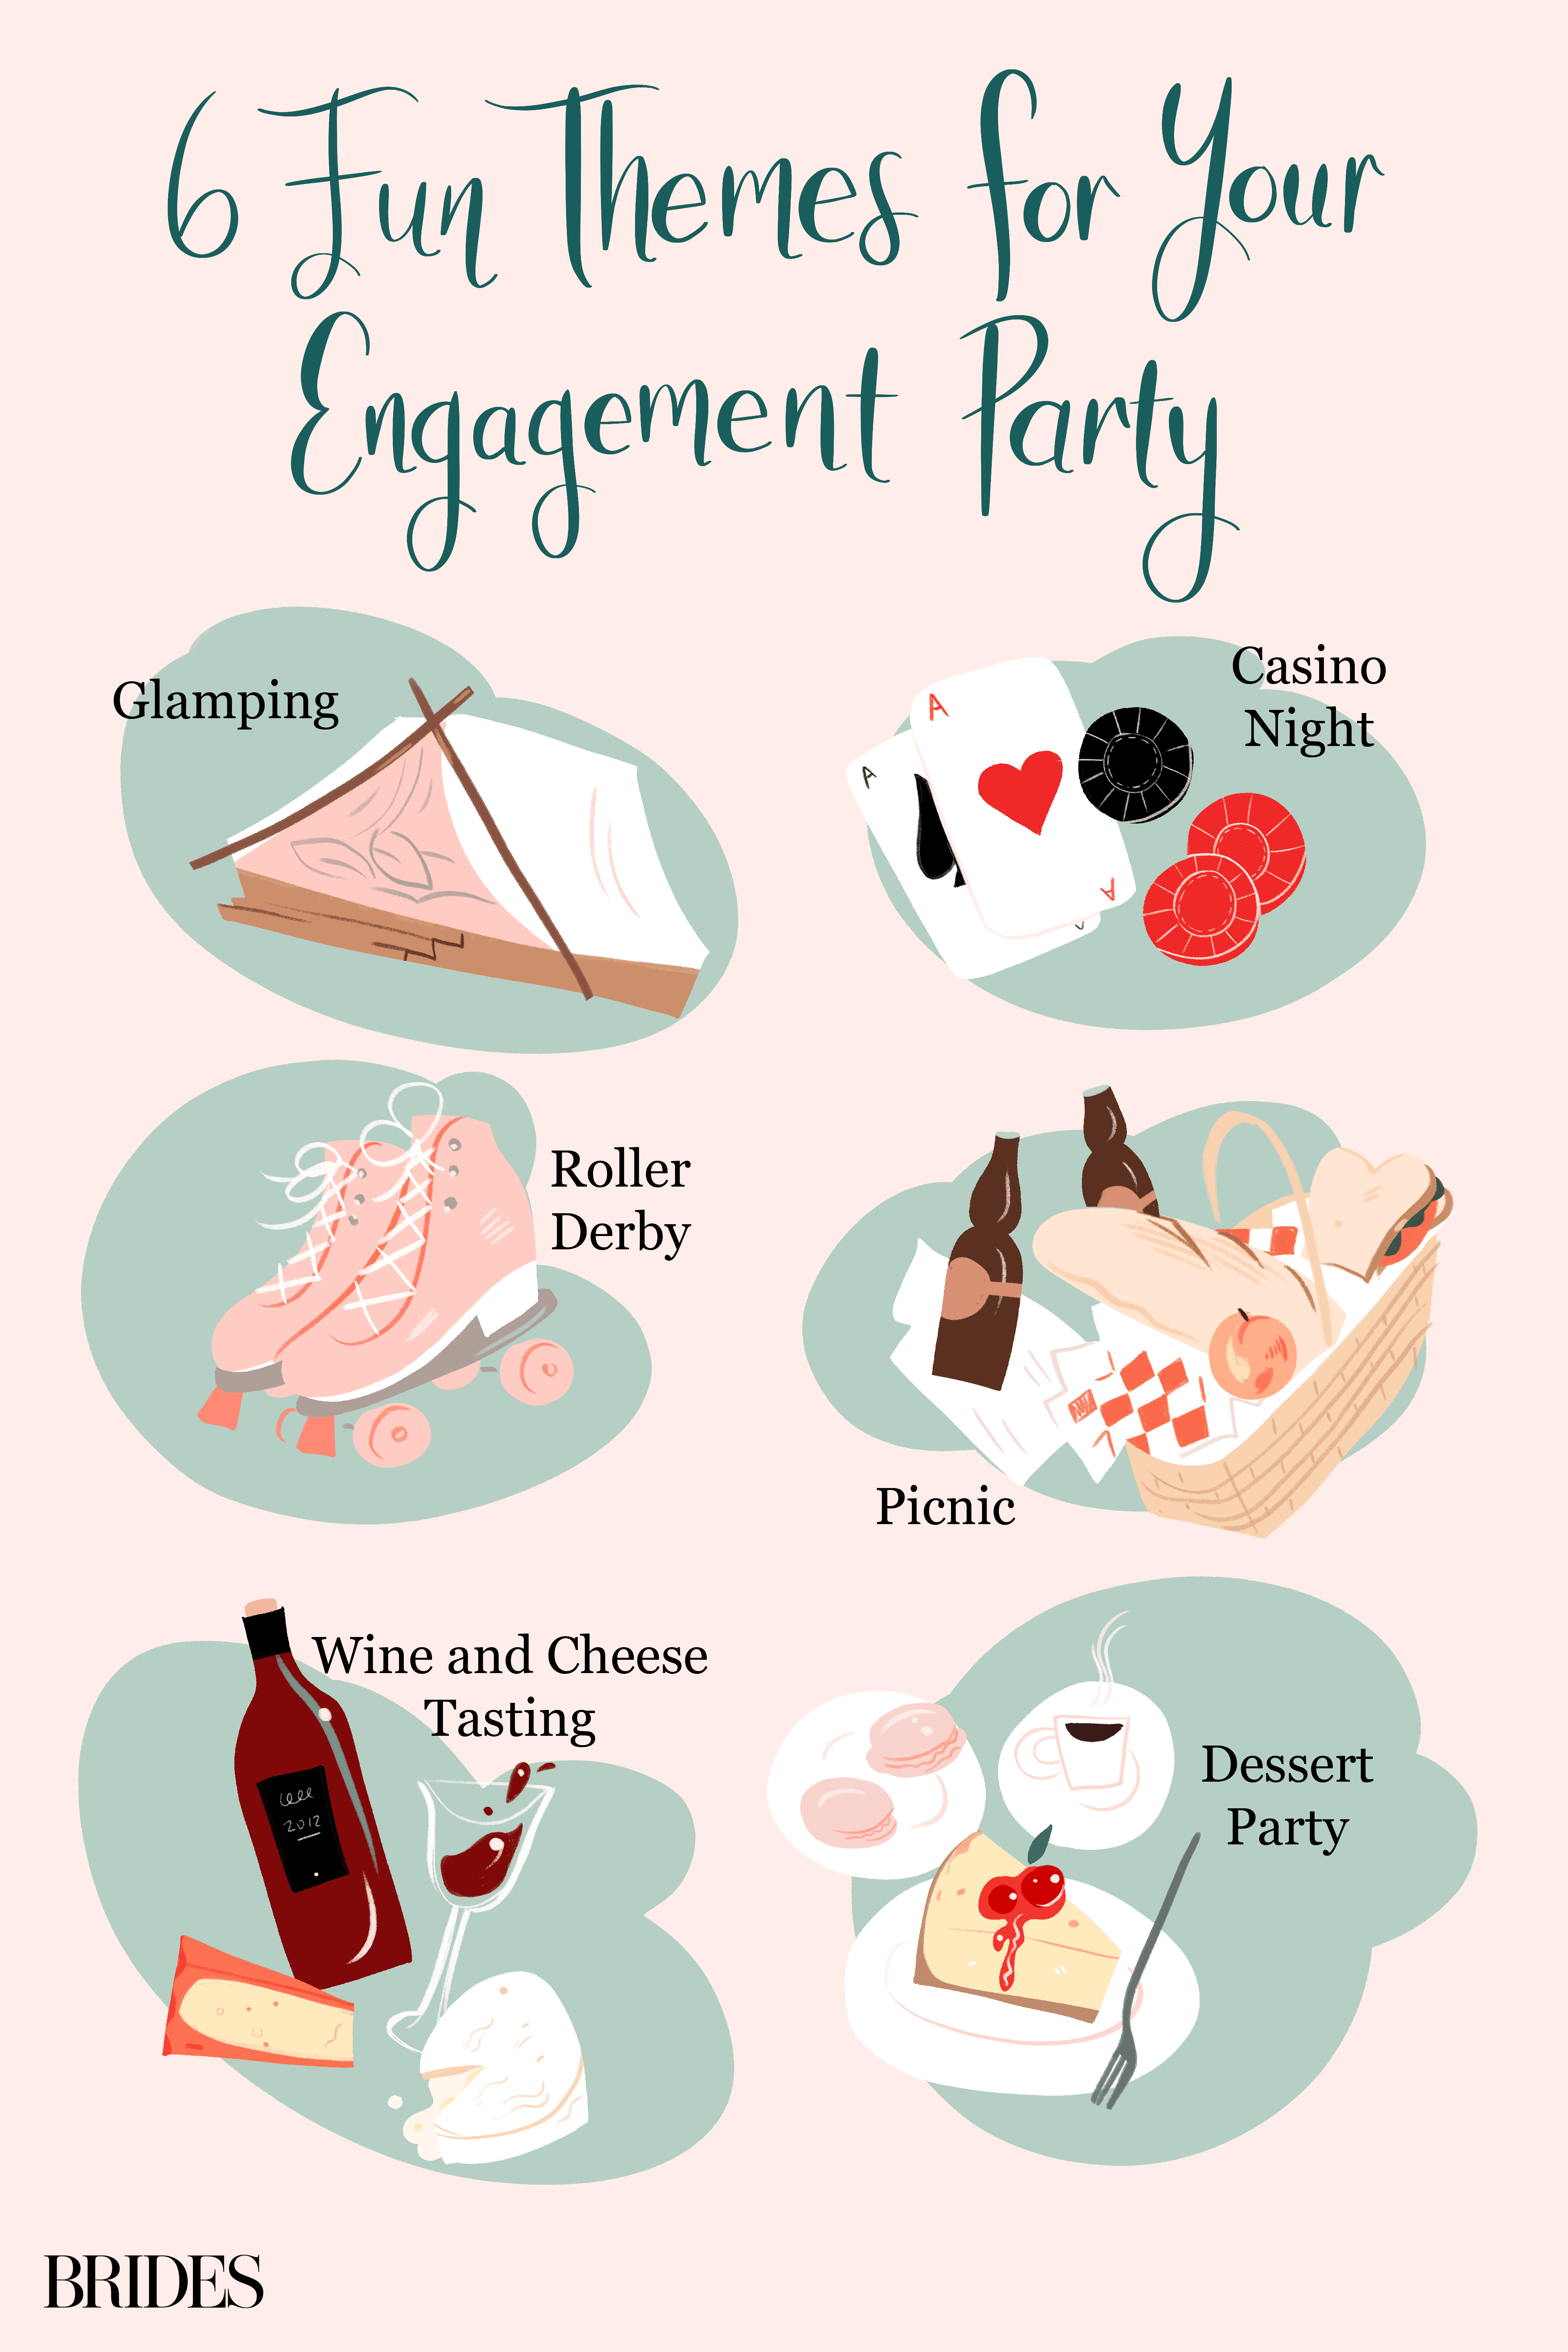 6 Fun Themes for Your Engagement Party